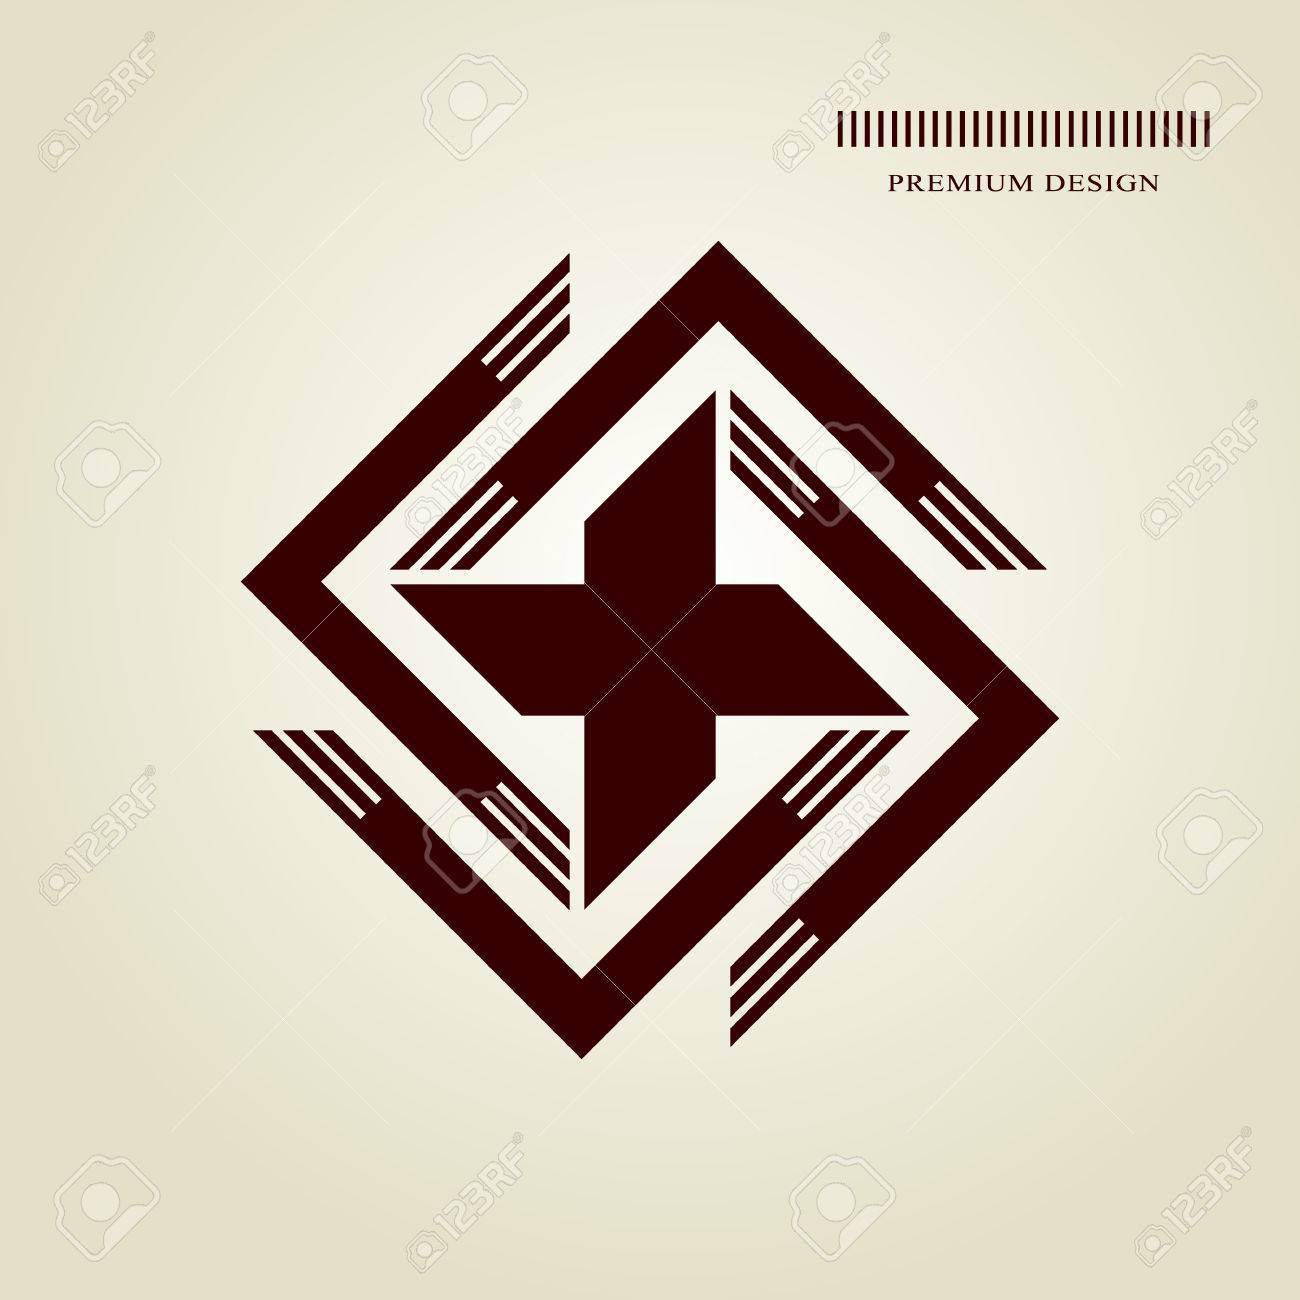 Swastika stock photos royalty free business images geometric monogram abstract swastika in trendy style monochrome emblem hipster minimal design elements biocorpaavc Gallery